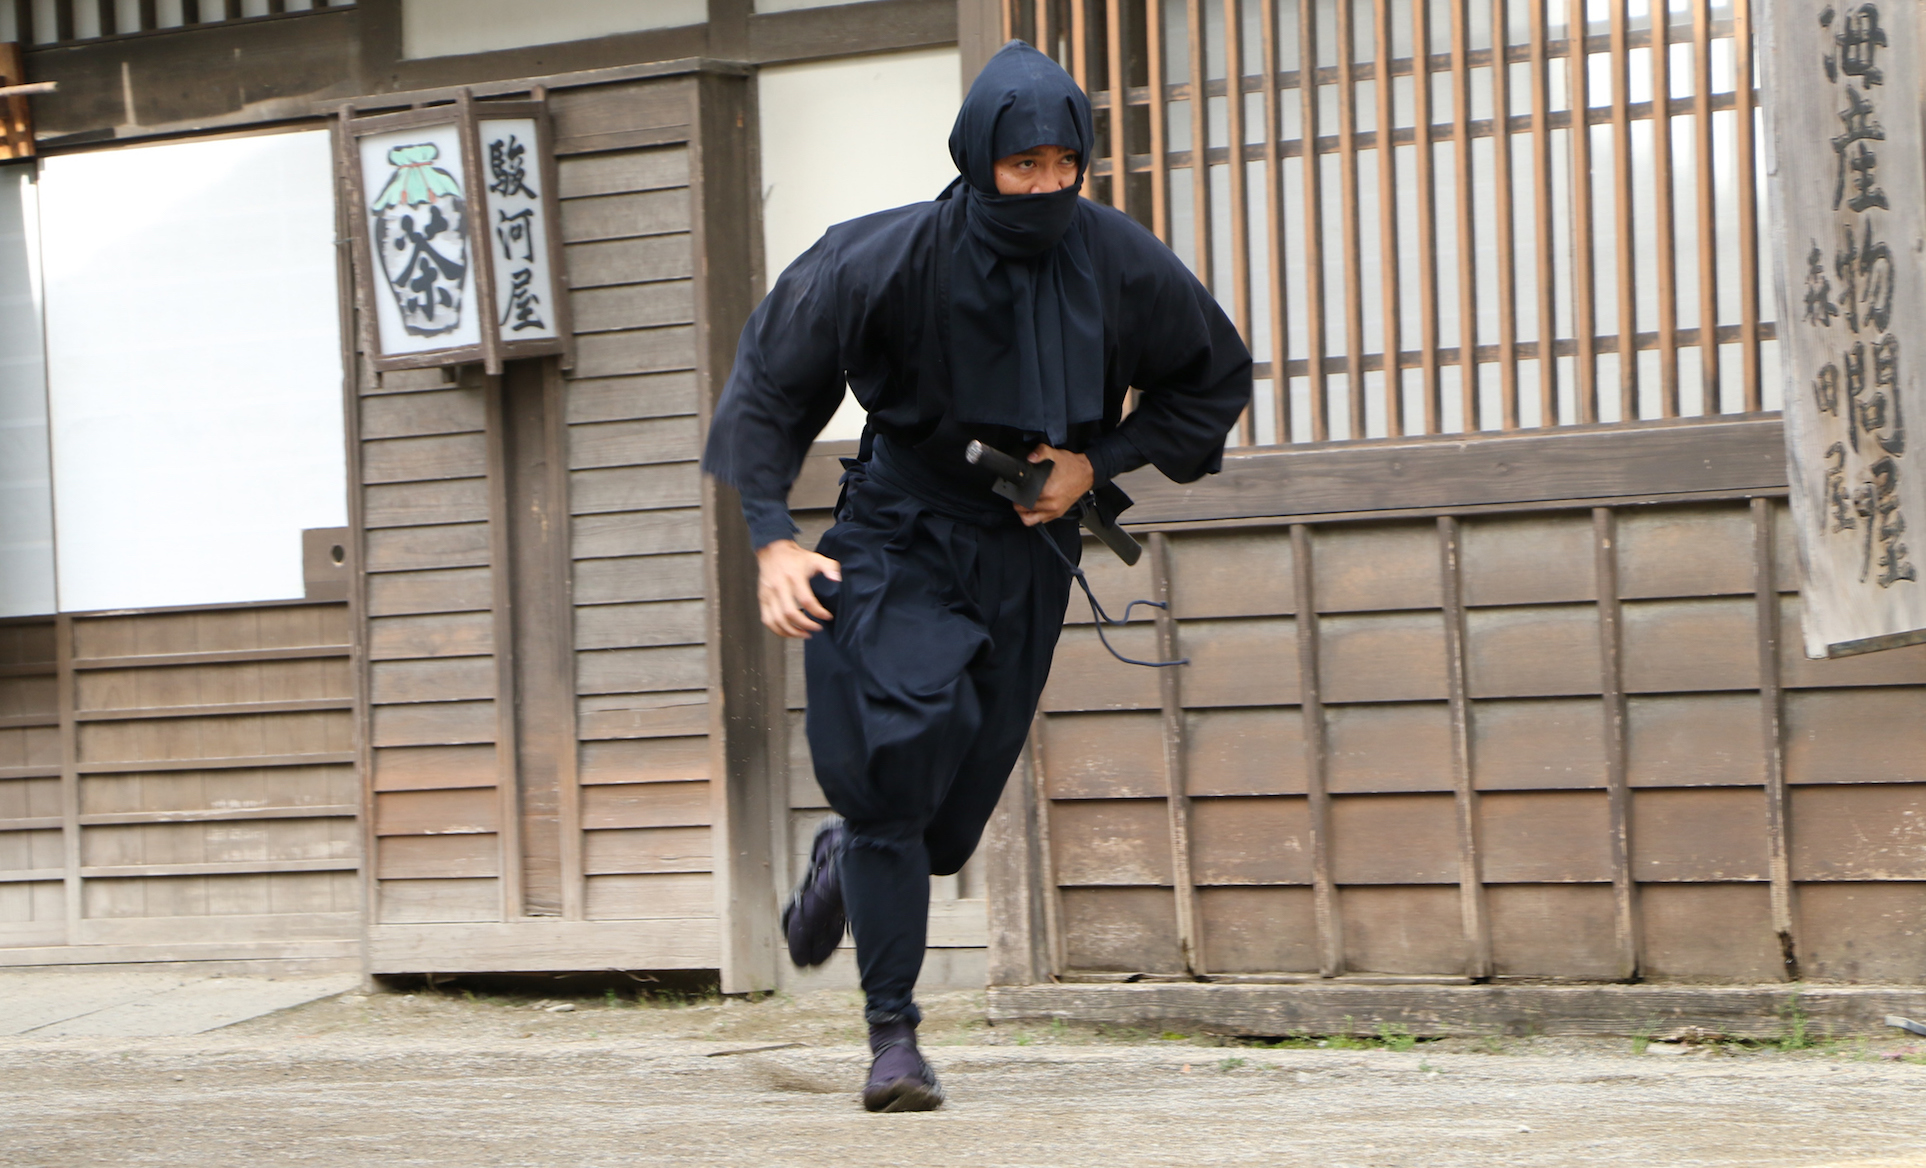 Two cities known for ninja, Iga in Mie Prefecture and Koka in Shiga Prefecture, have been officially named 'Japan Heritage' properties. | ISTOCK